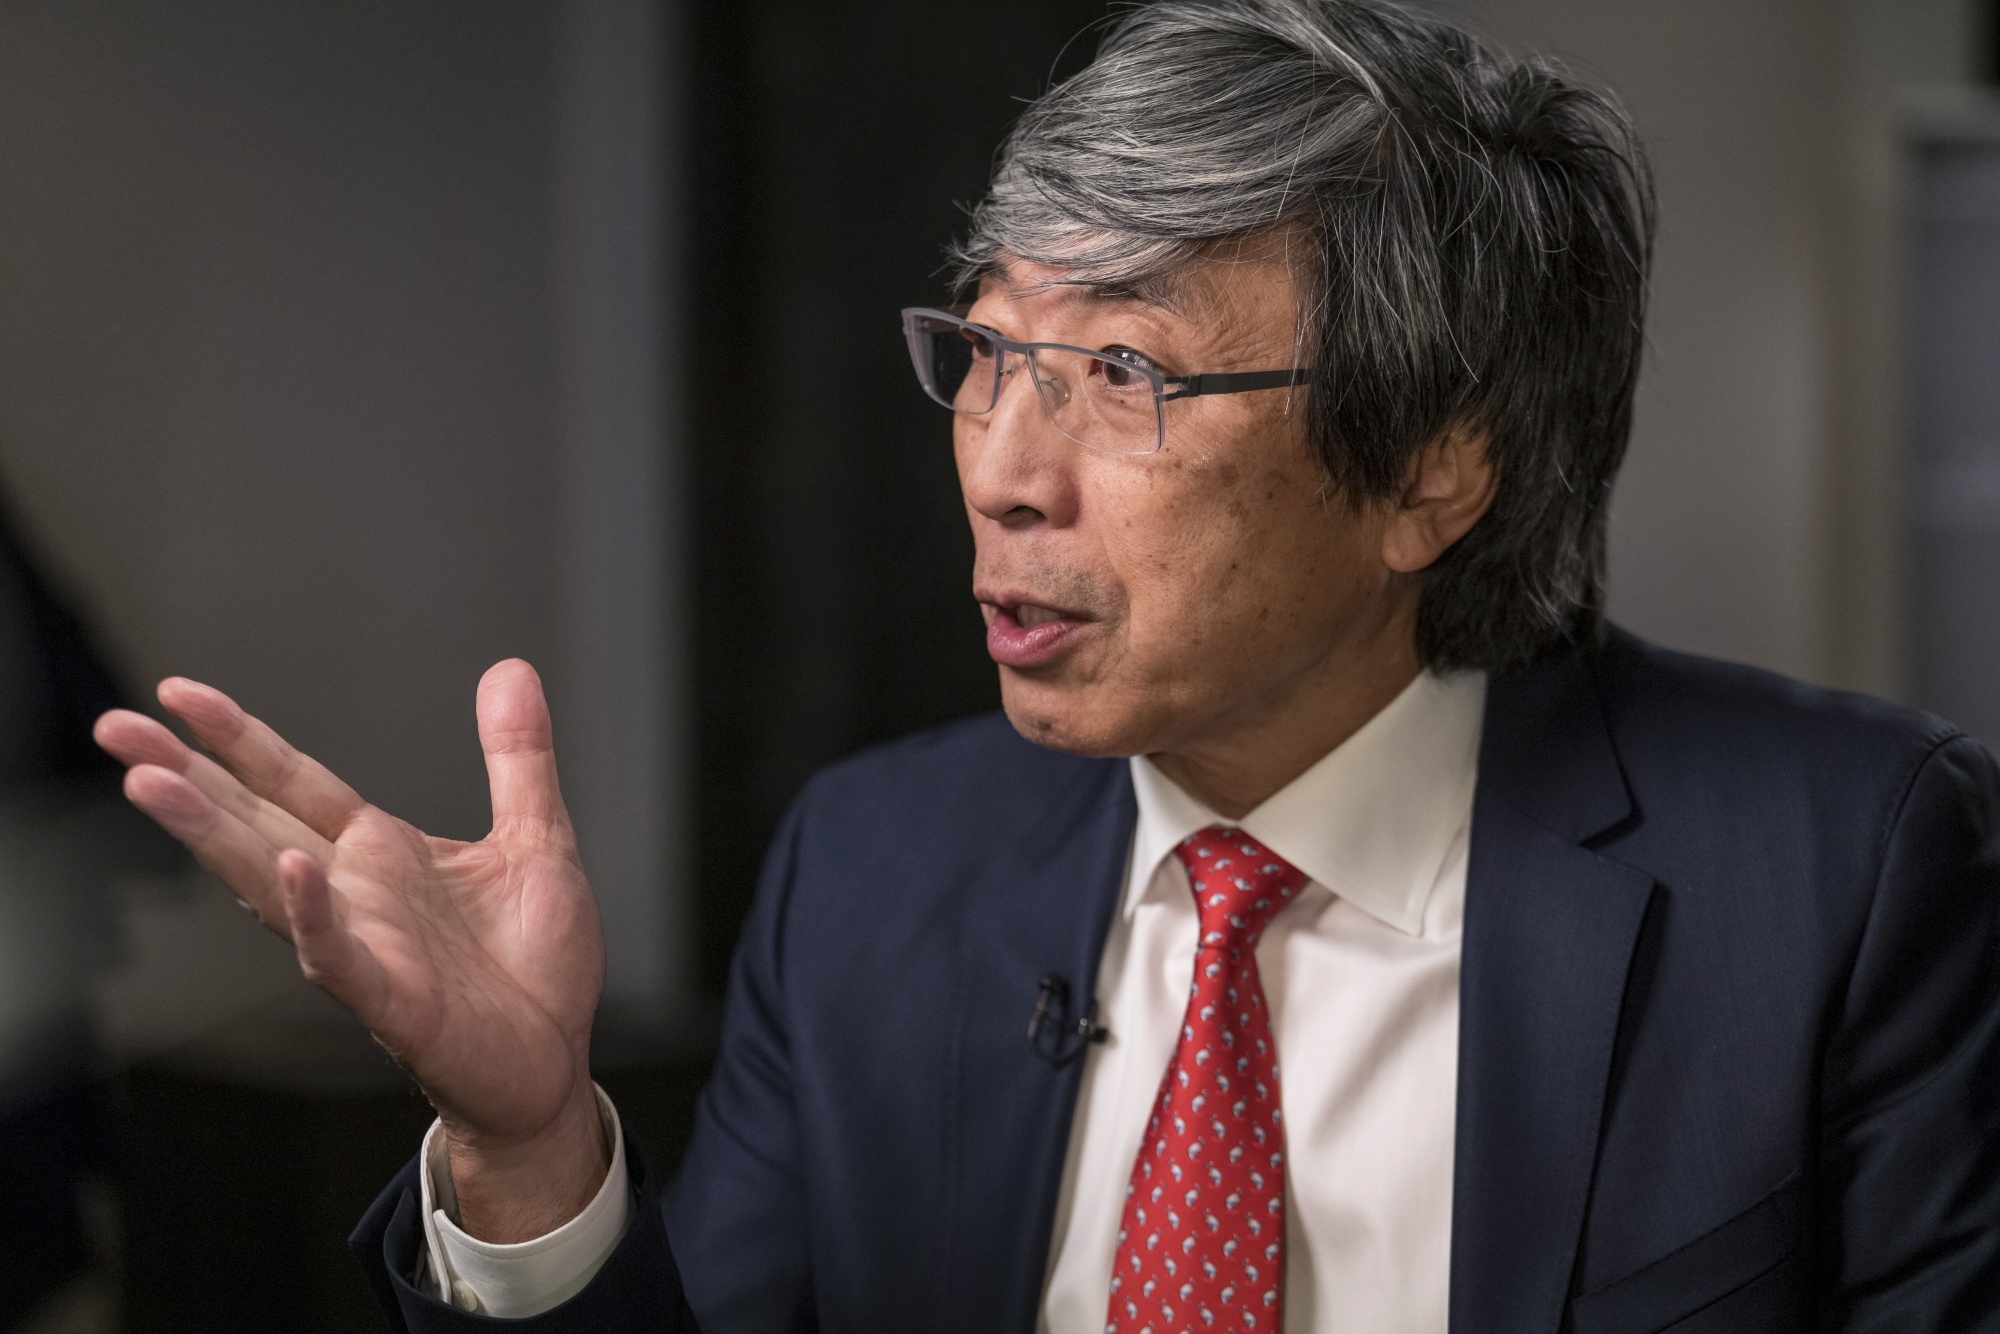 Patrick Soon-Shiong, covid-19, covid-19 vaccine, cancer & covid-19 vaccine initiative, South Africa